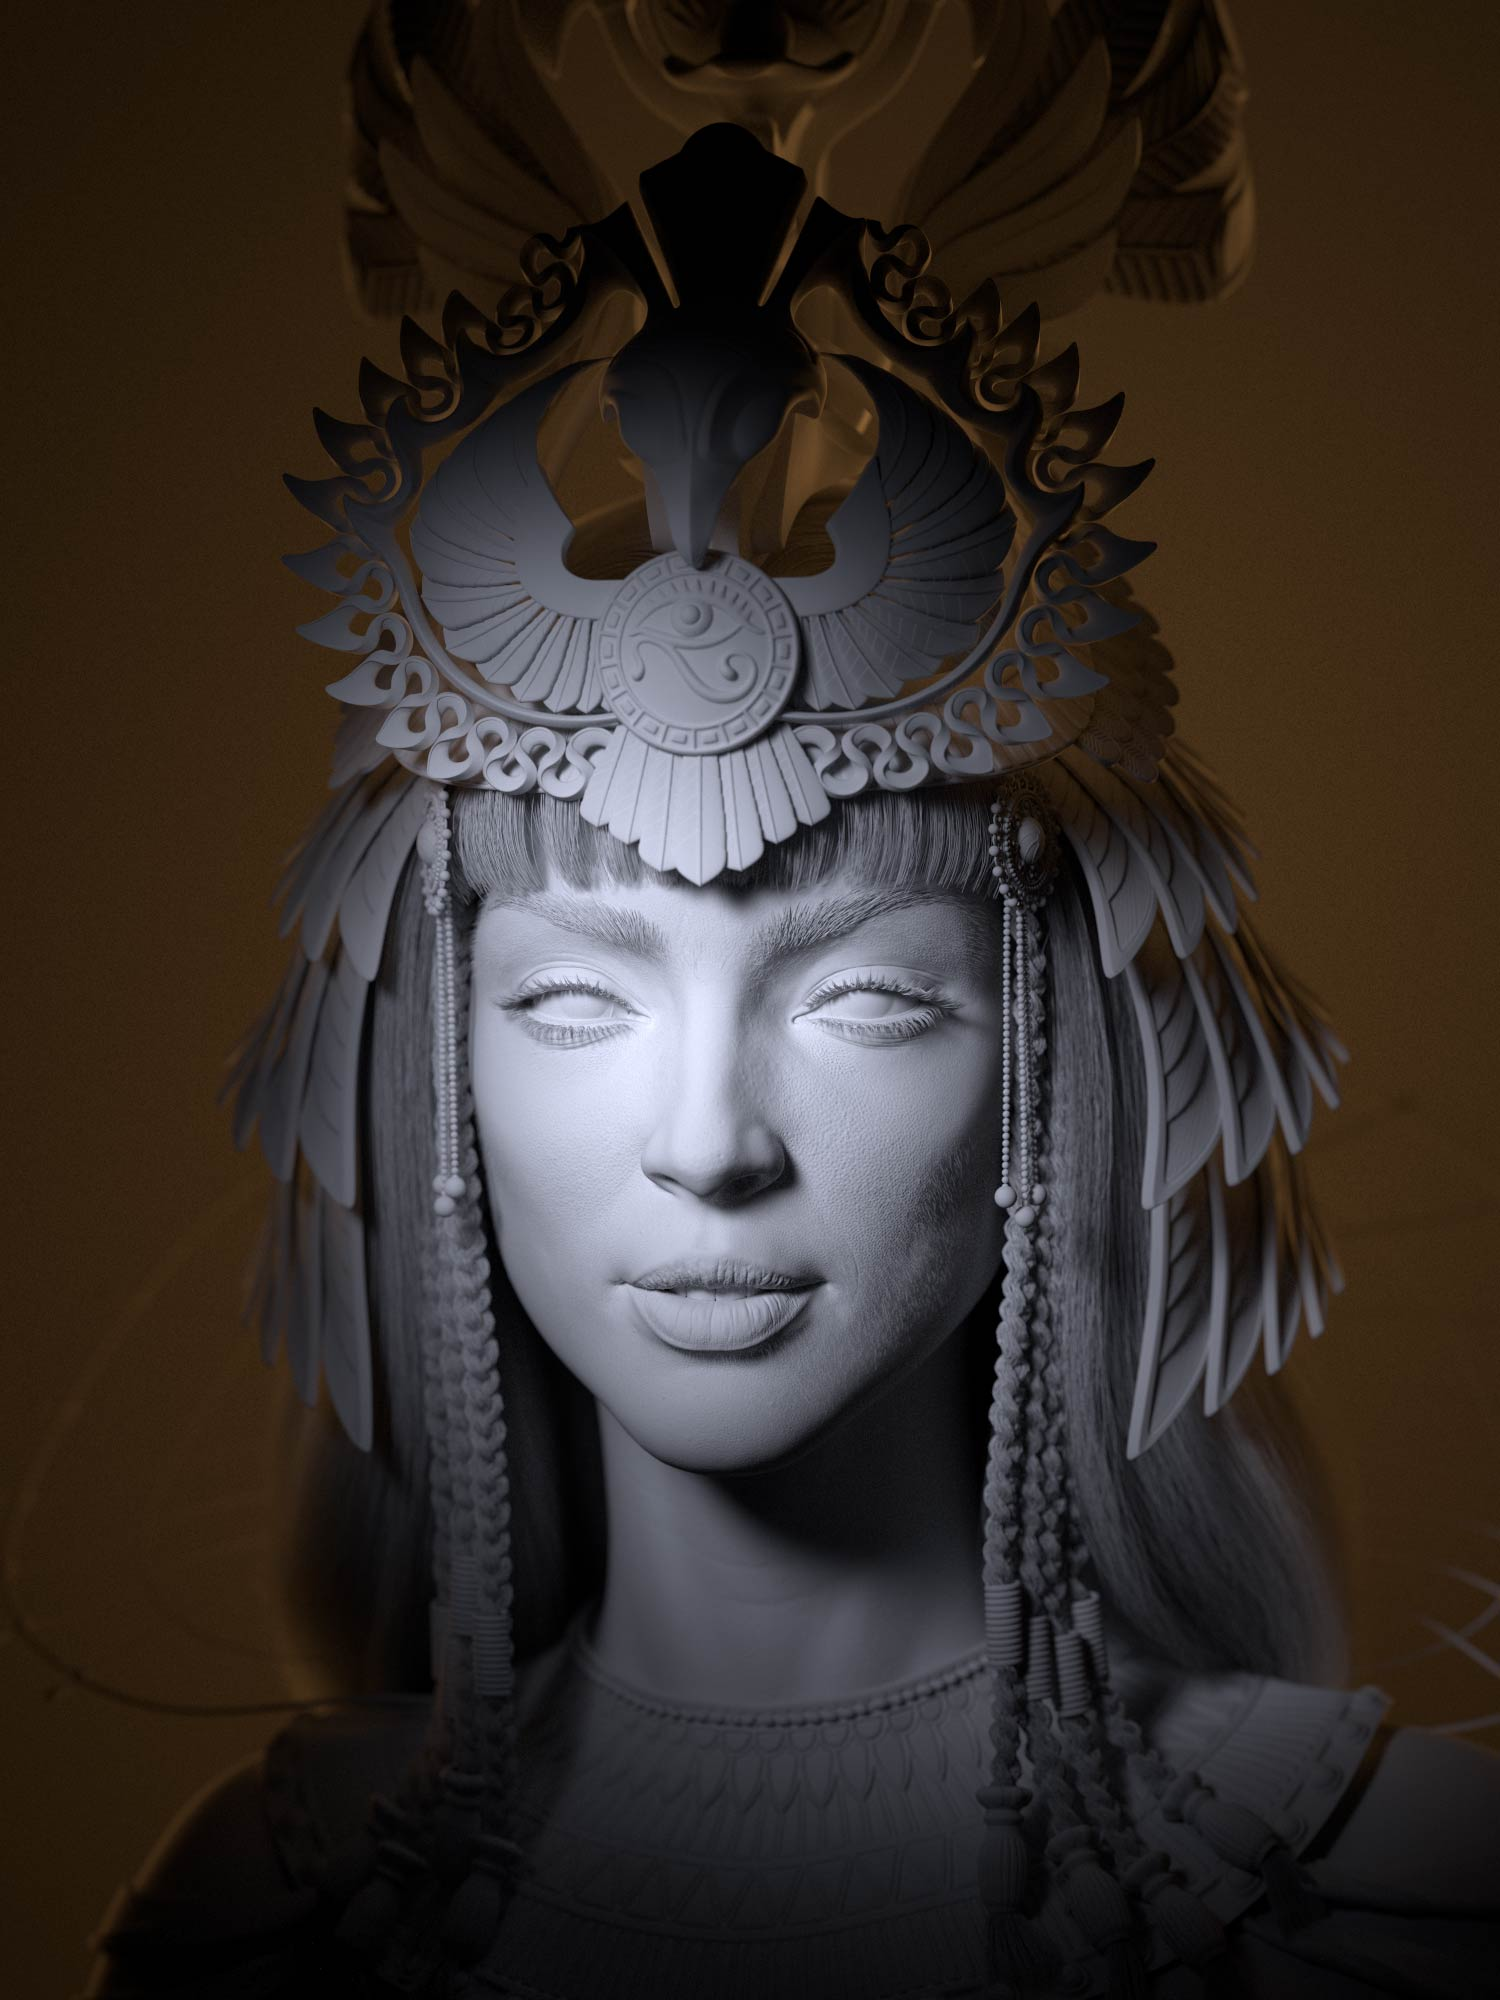 cleopatra_3d_lighting_wireframe_digital_csulpting Egyptian queen 3D model